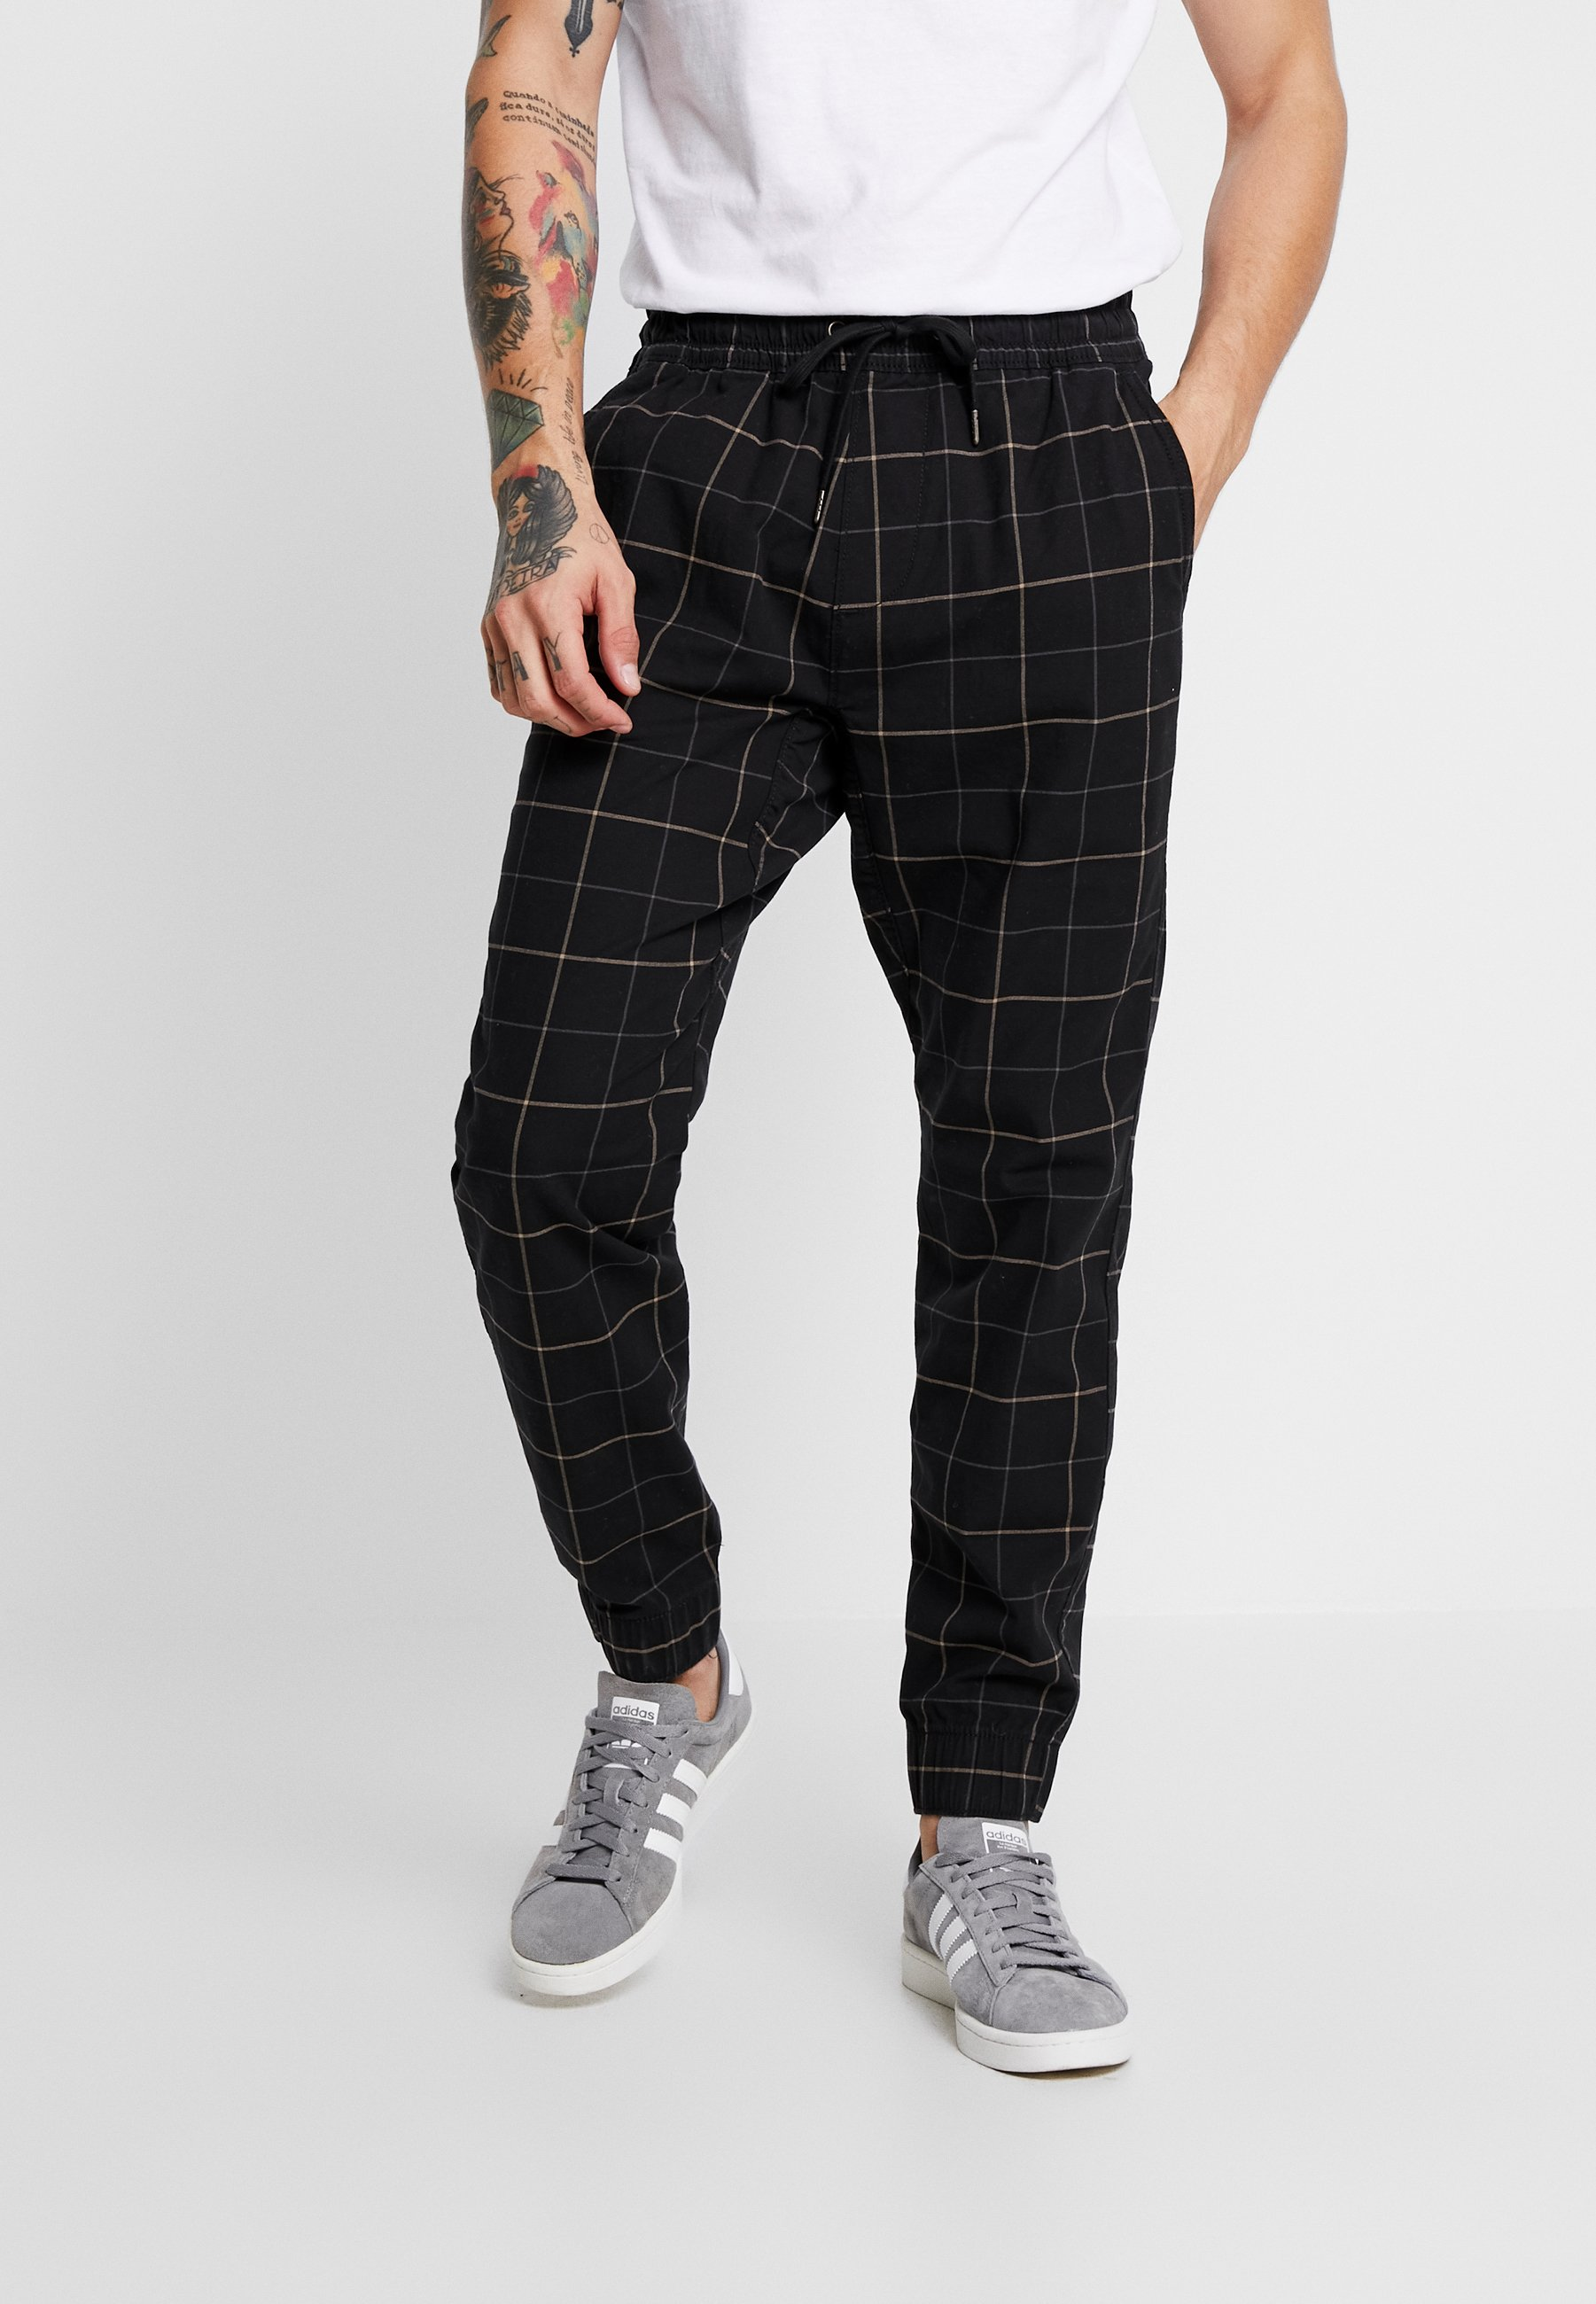 Hollister Co. Plaid - Broek Khaki/black MktaOoGz Ha6kaJTz